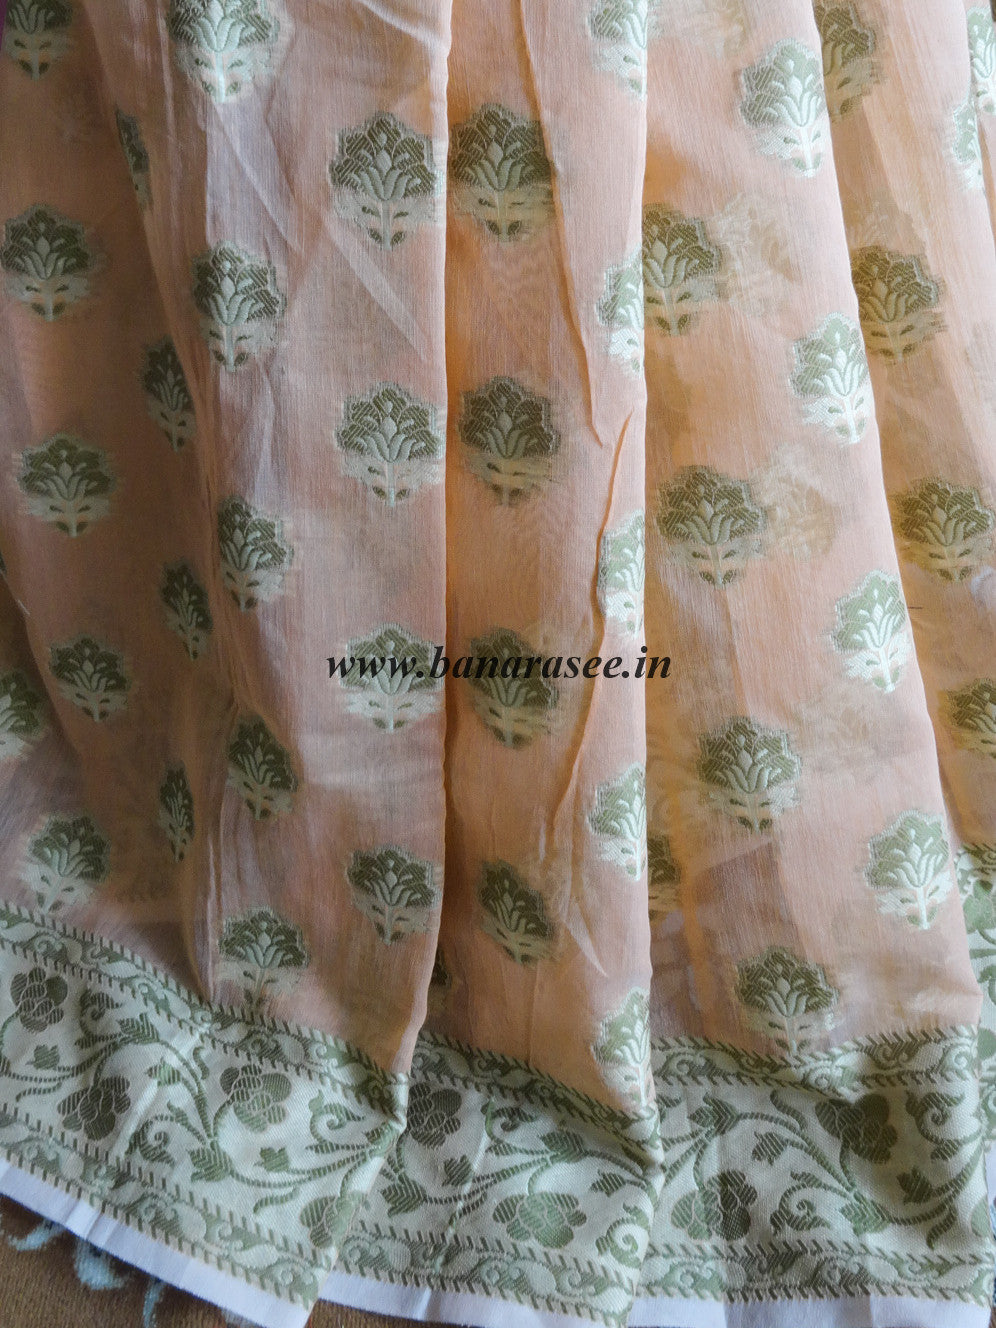 Banarasee/Banarasi Cotton Silk Mix Saree With Floral Weaving Design-Peach